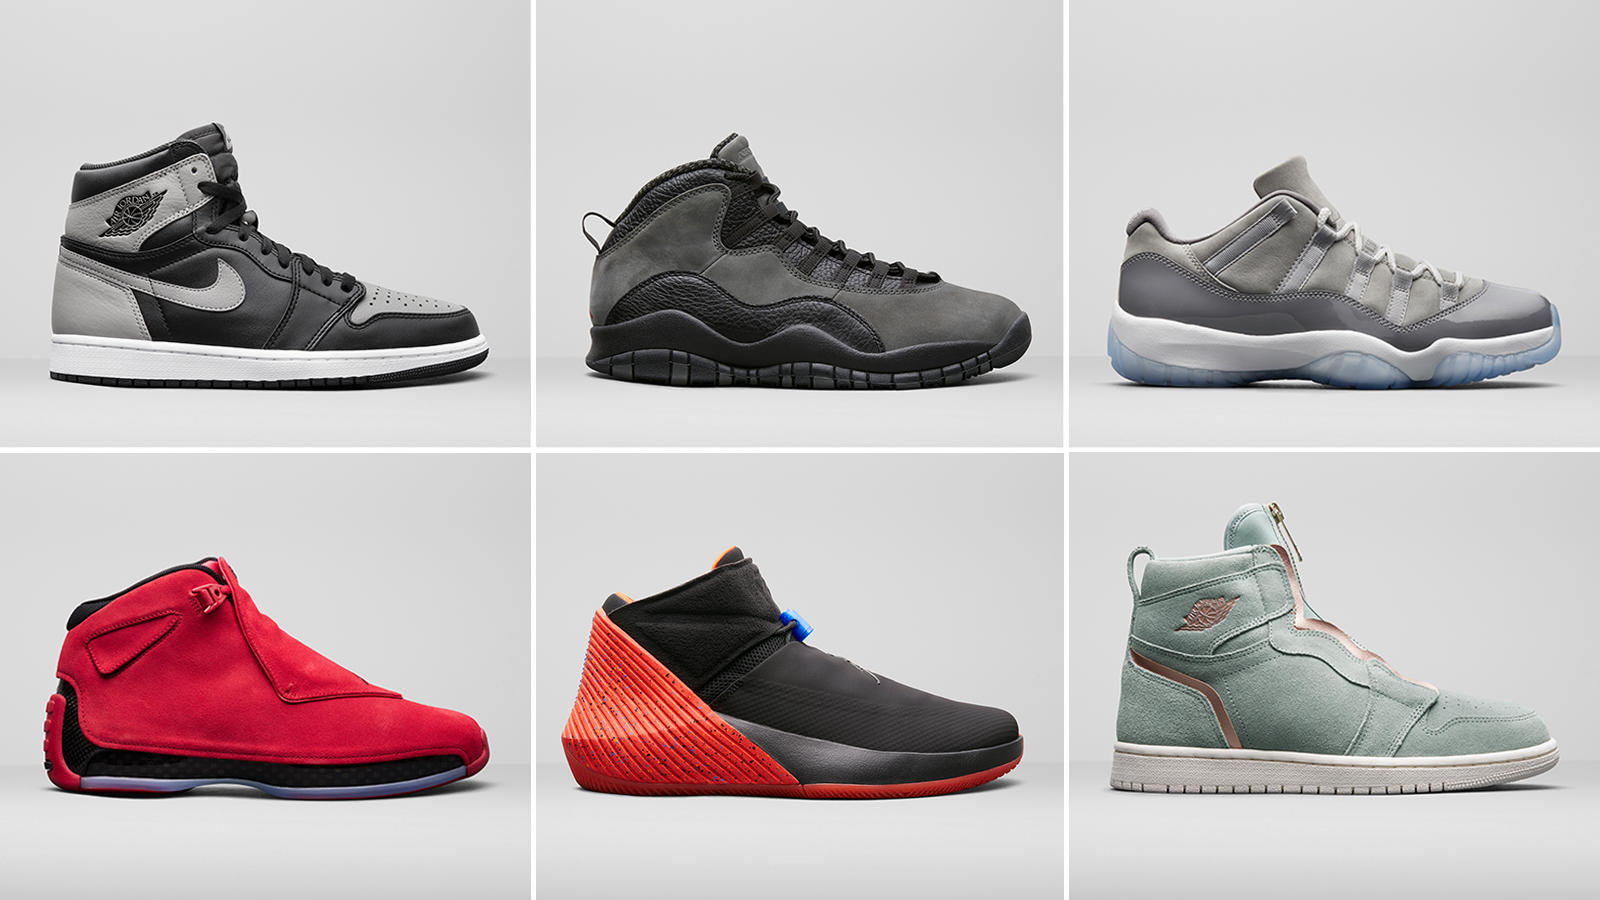 d2c1b105cb6d27 Jordan Brand Unveils Select Styles For Summer 2018 - Nike News